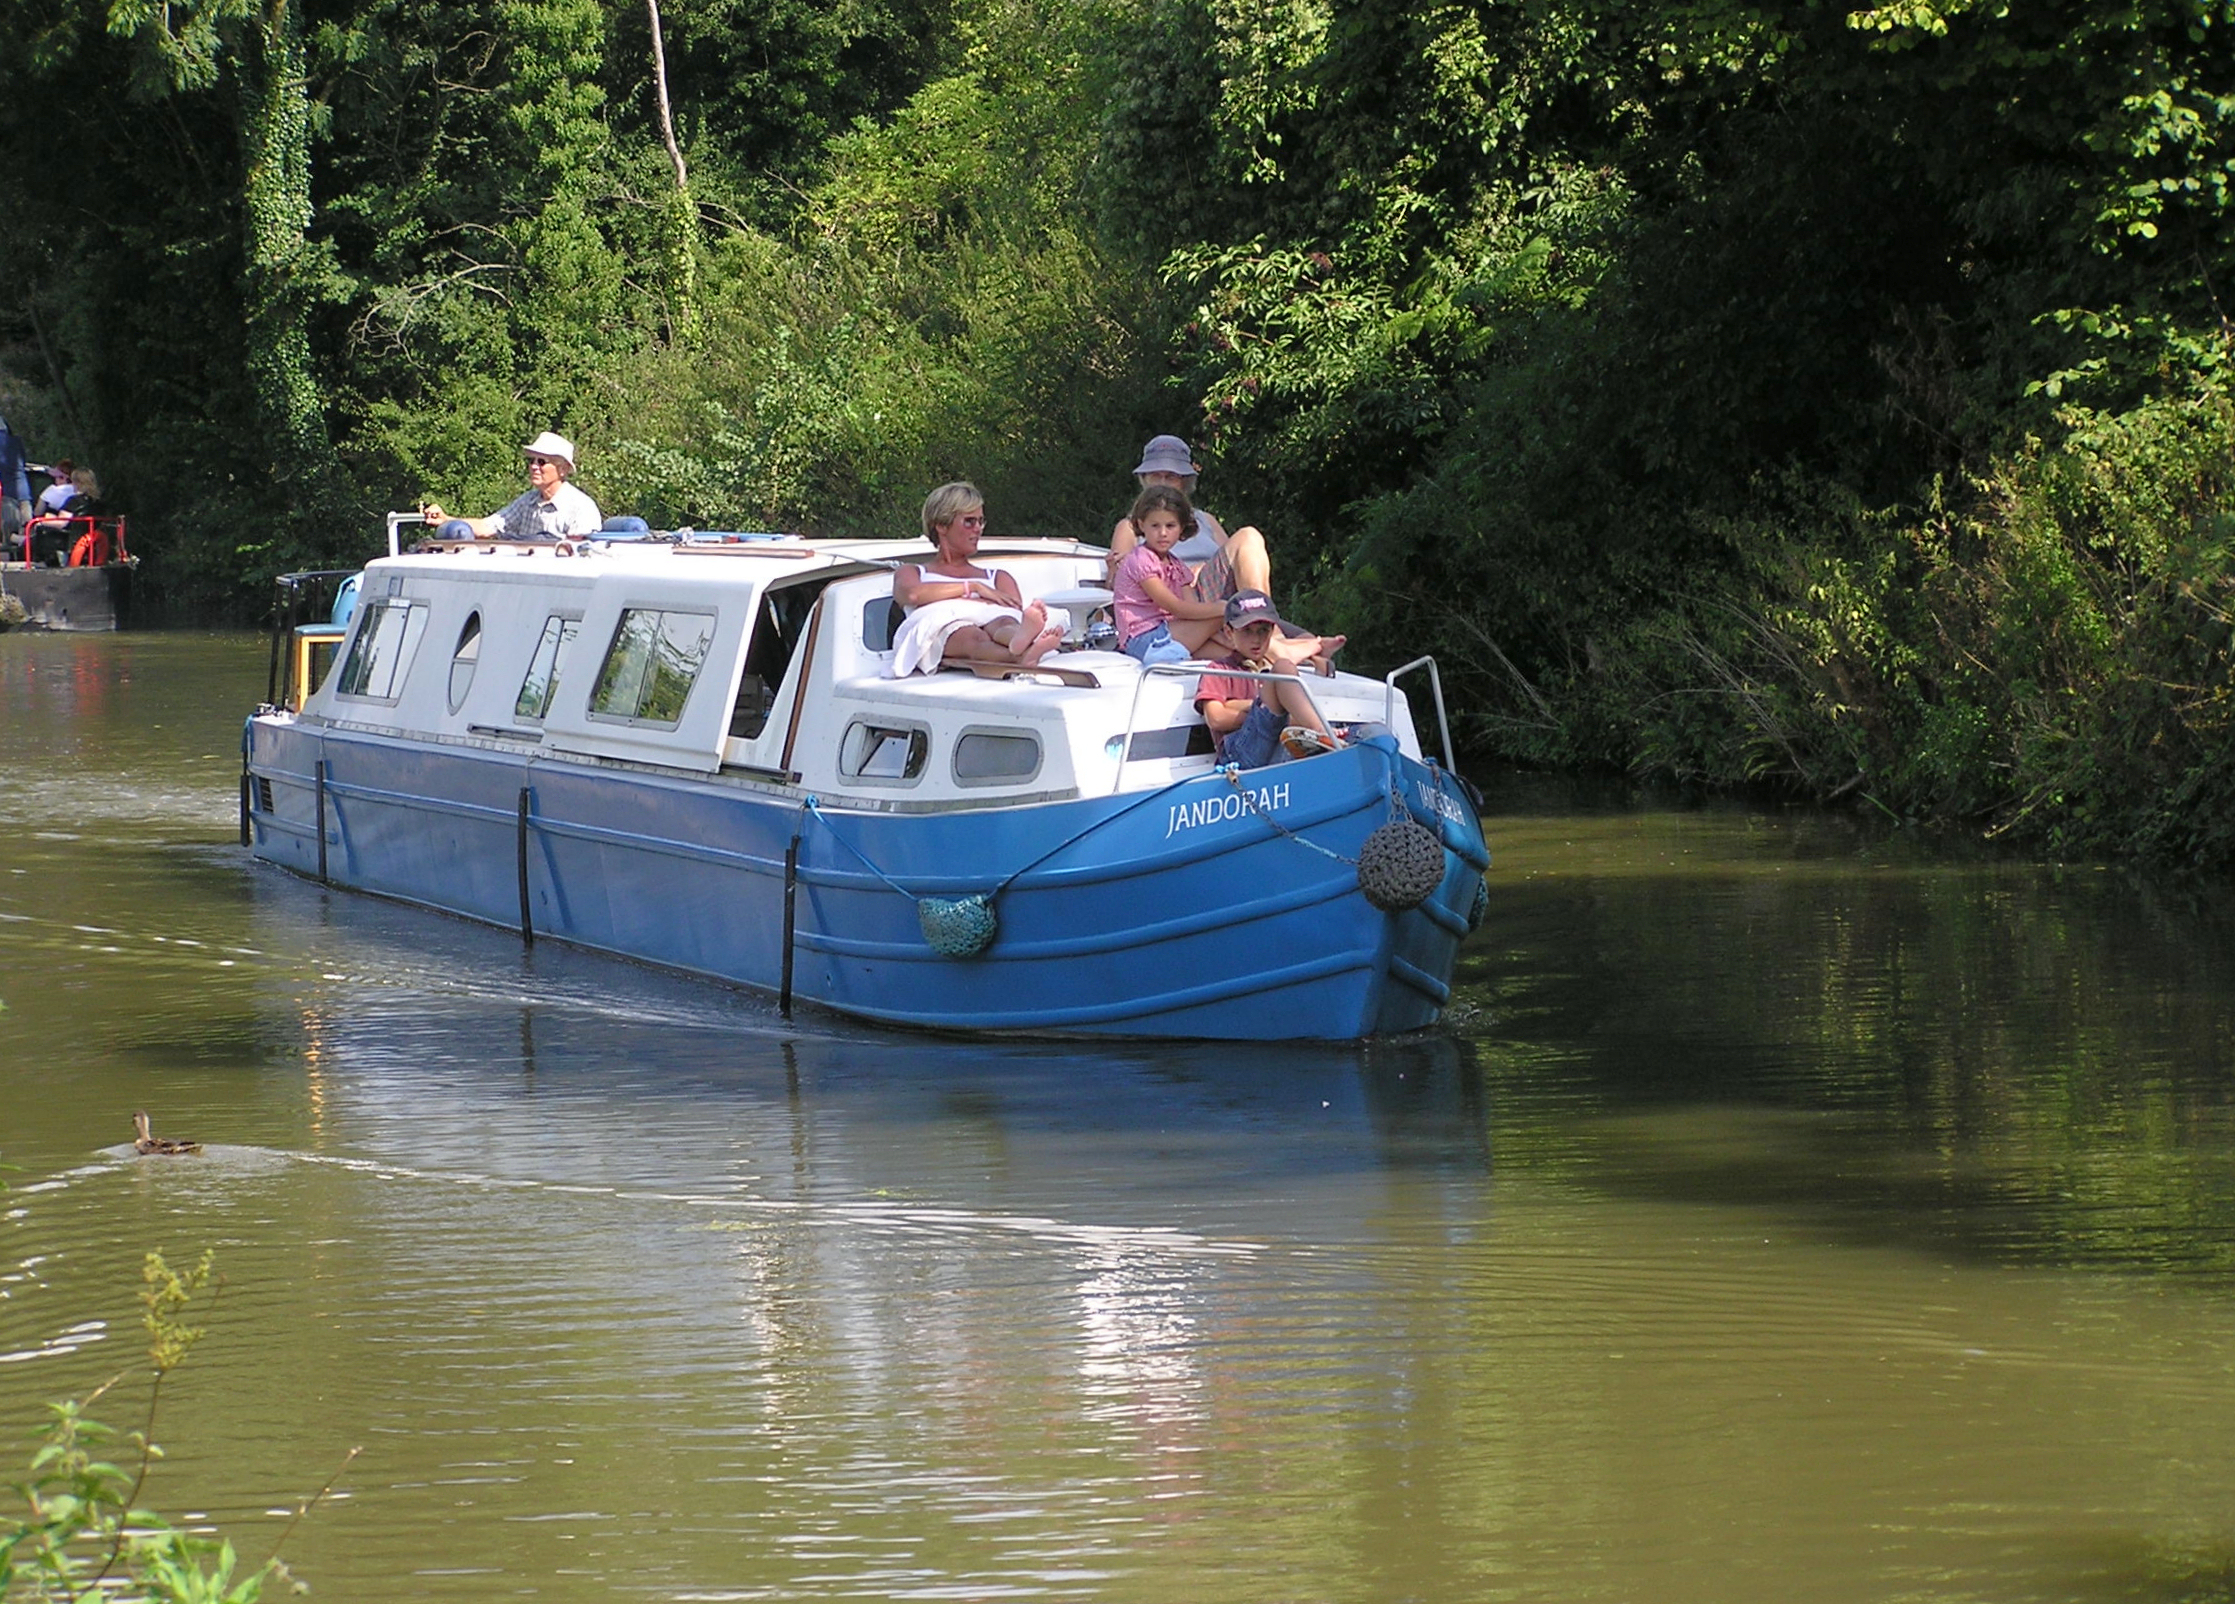 File:Pleasure boat on the kennetandavon canal arp.jpg - Wikimedia ...